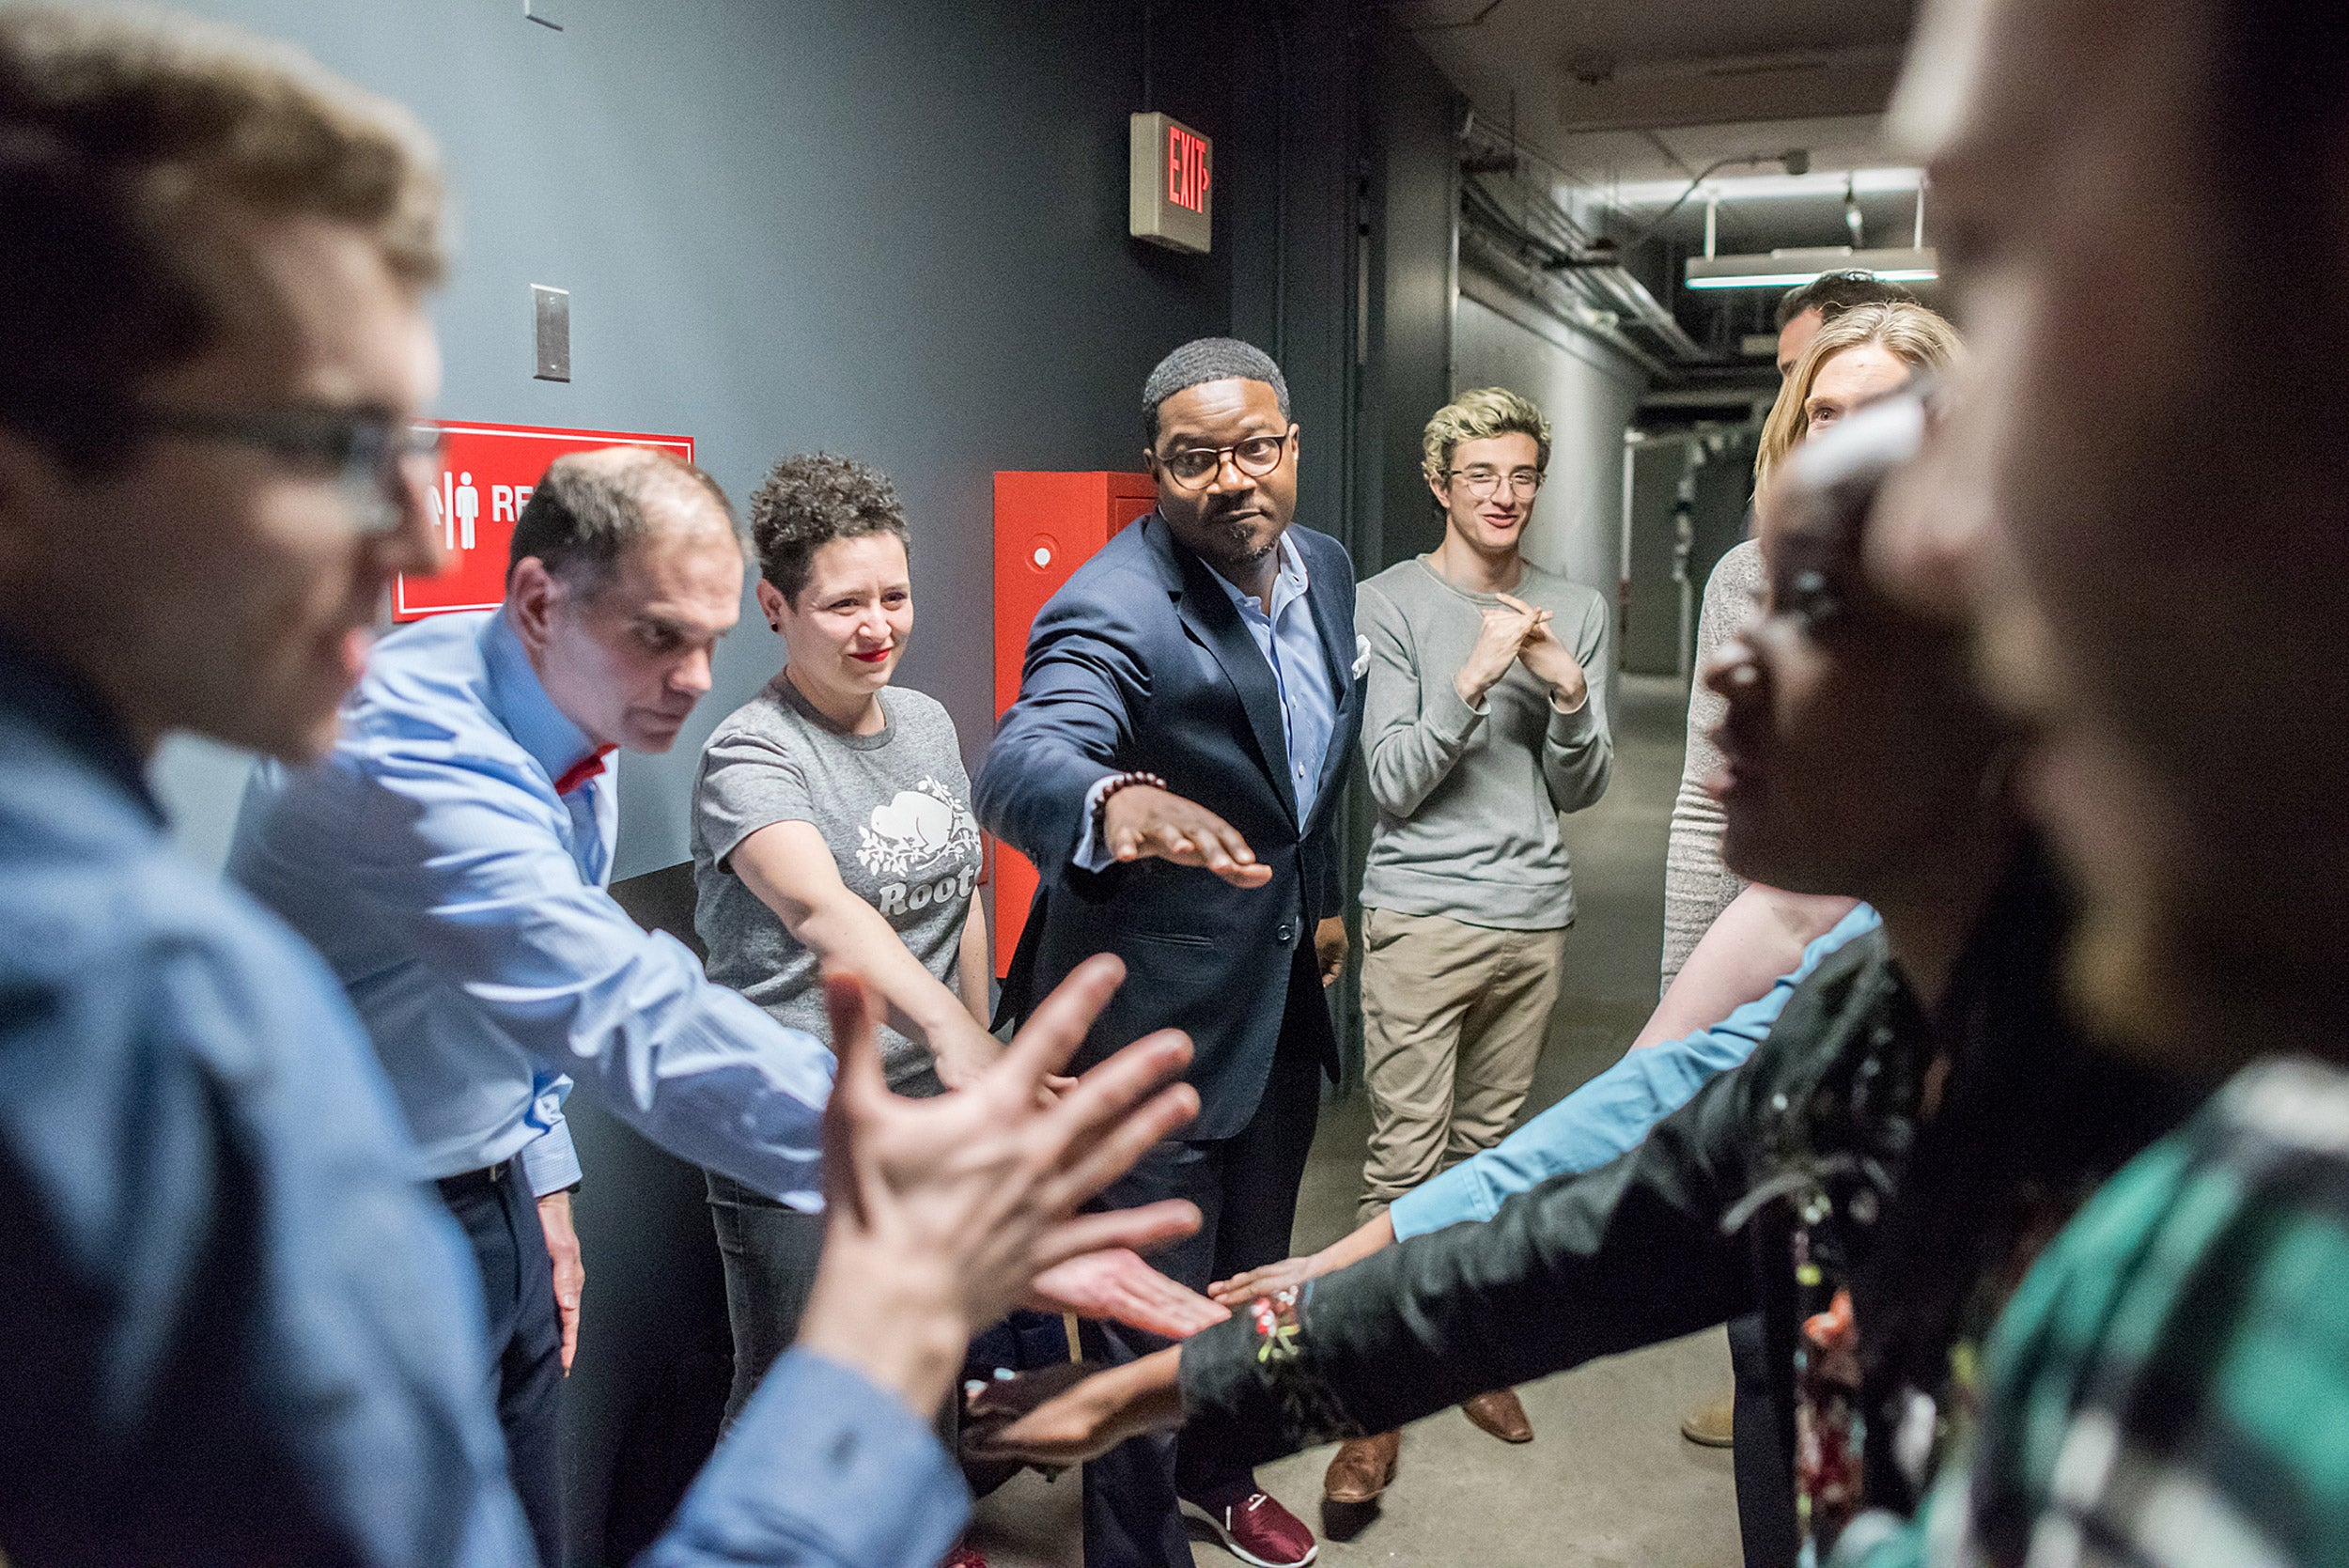 Faculty and deans huddle in support backstage.